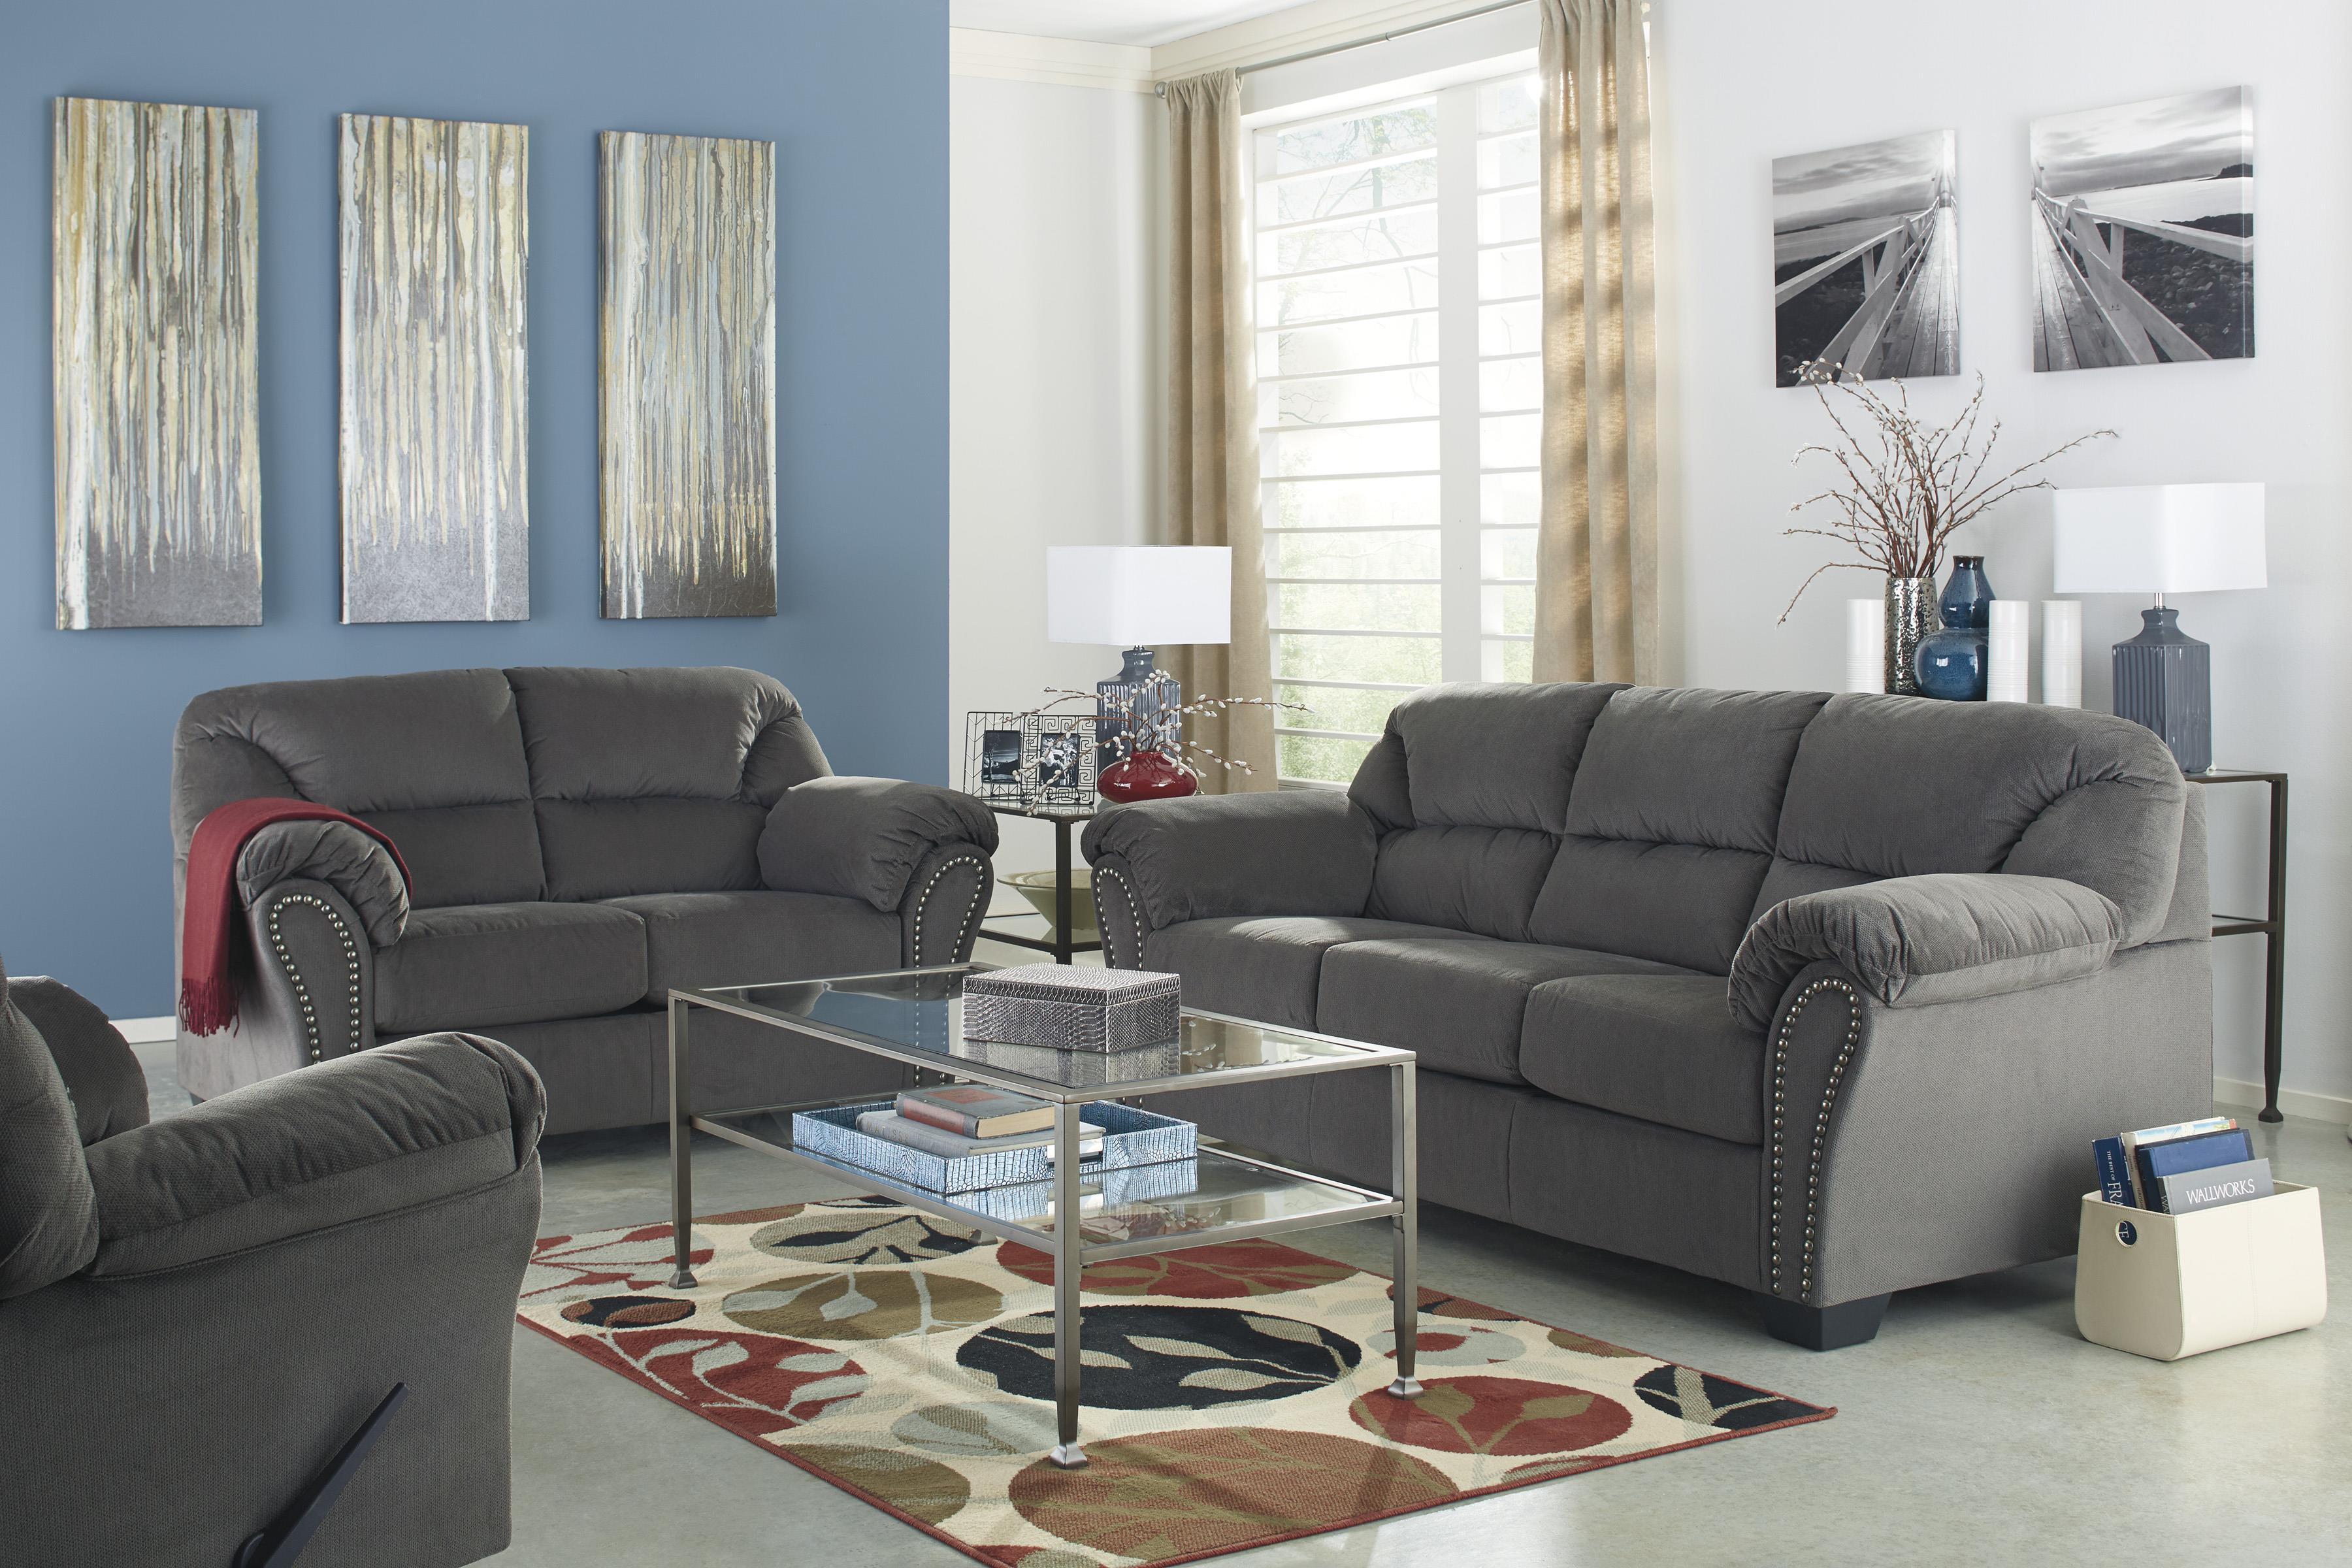 Signature Design by Ashley Kinlock Stationary Living Room Group - Item Number: 33400 Living Room Group 4